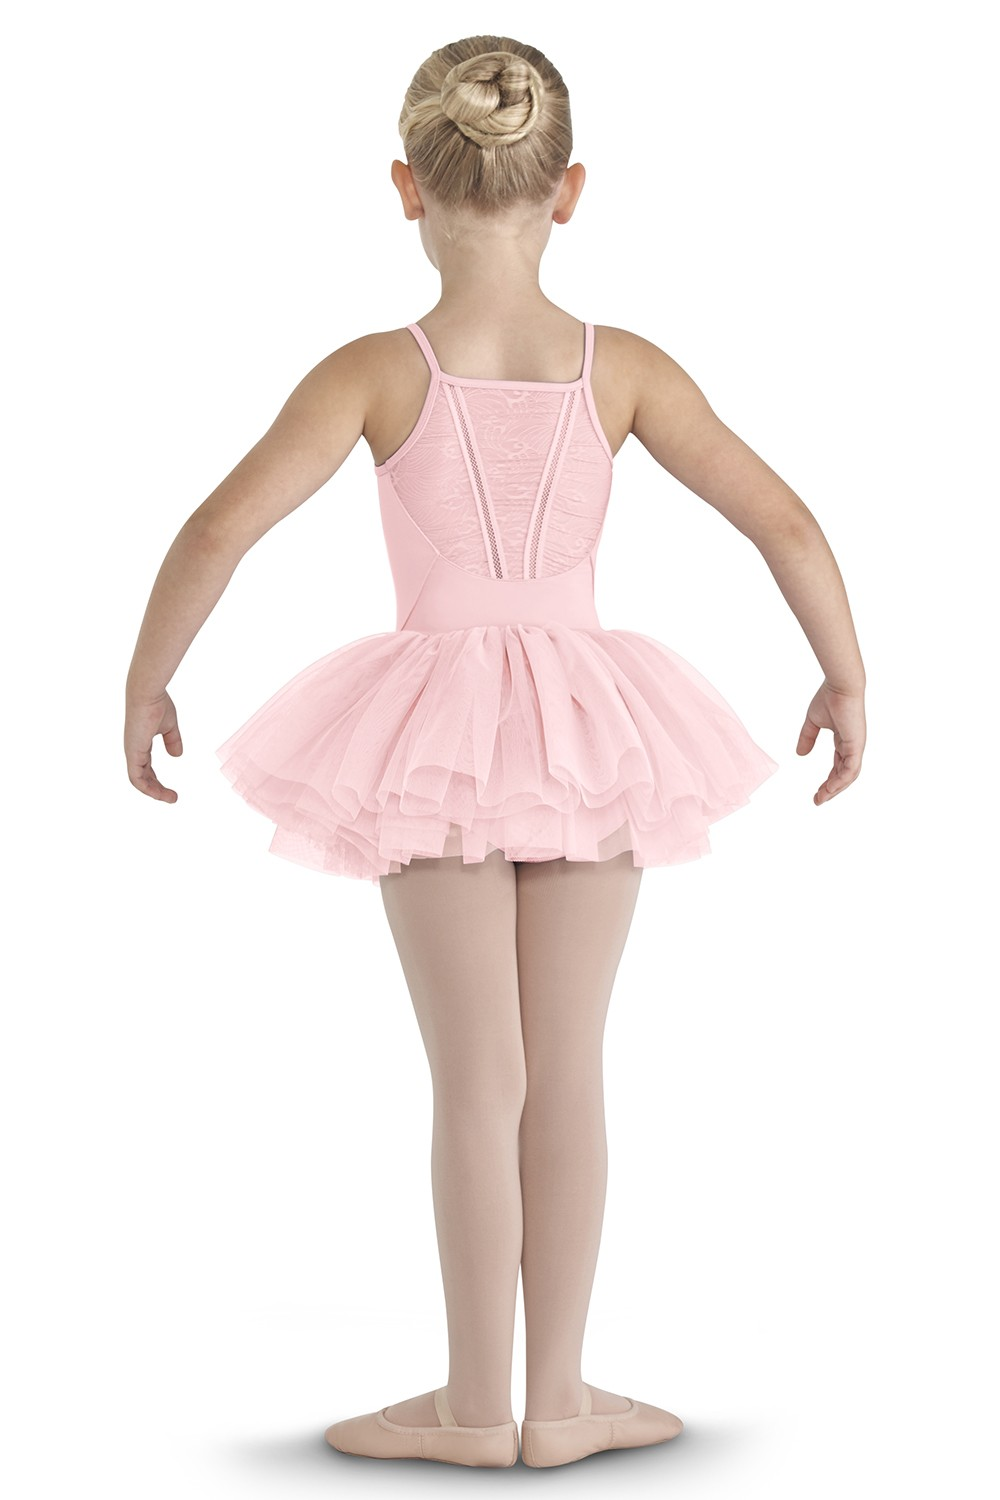 Sona Girls Skirted Leotards